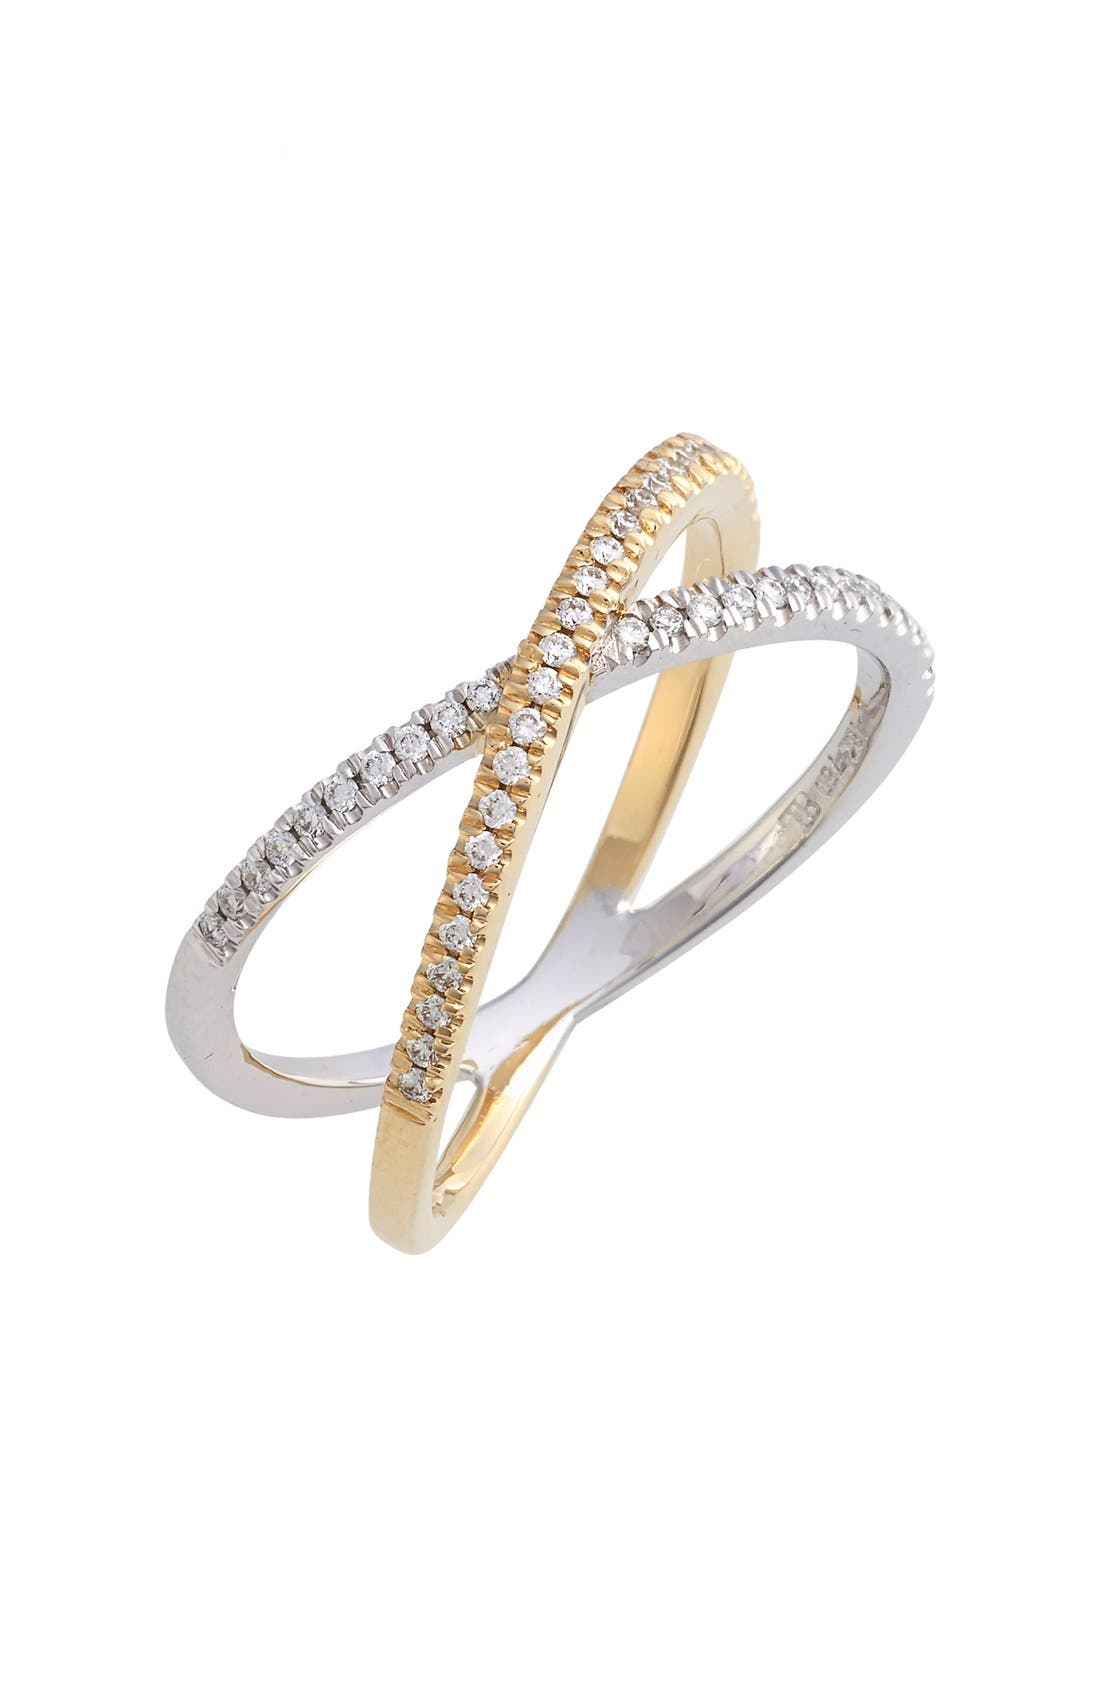 BONY LEVY Stackable Crossover Diamond Ring, Main, color, WHITE GOLD/ YELLOW GOLD